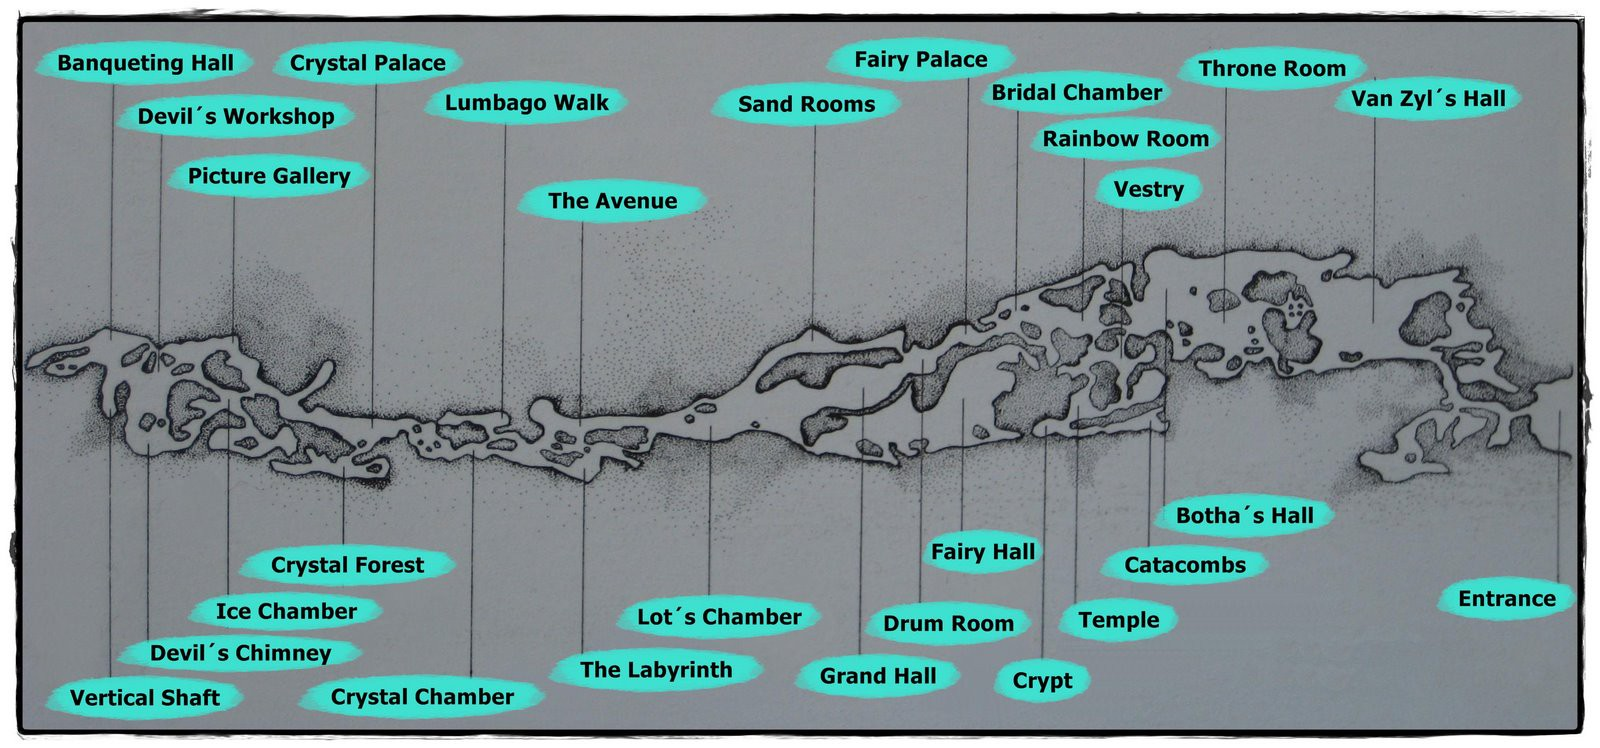 guide-map-of-cango-caves.jpg